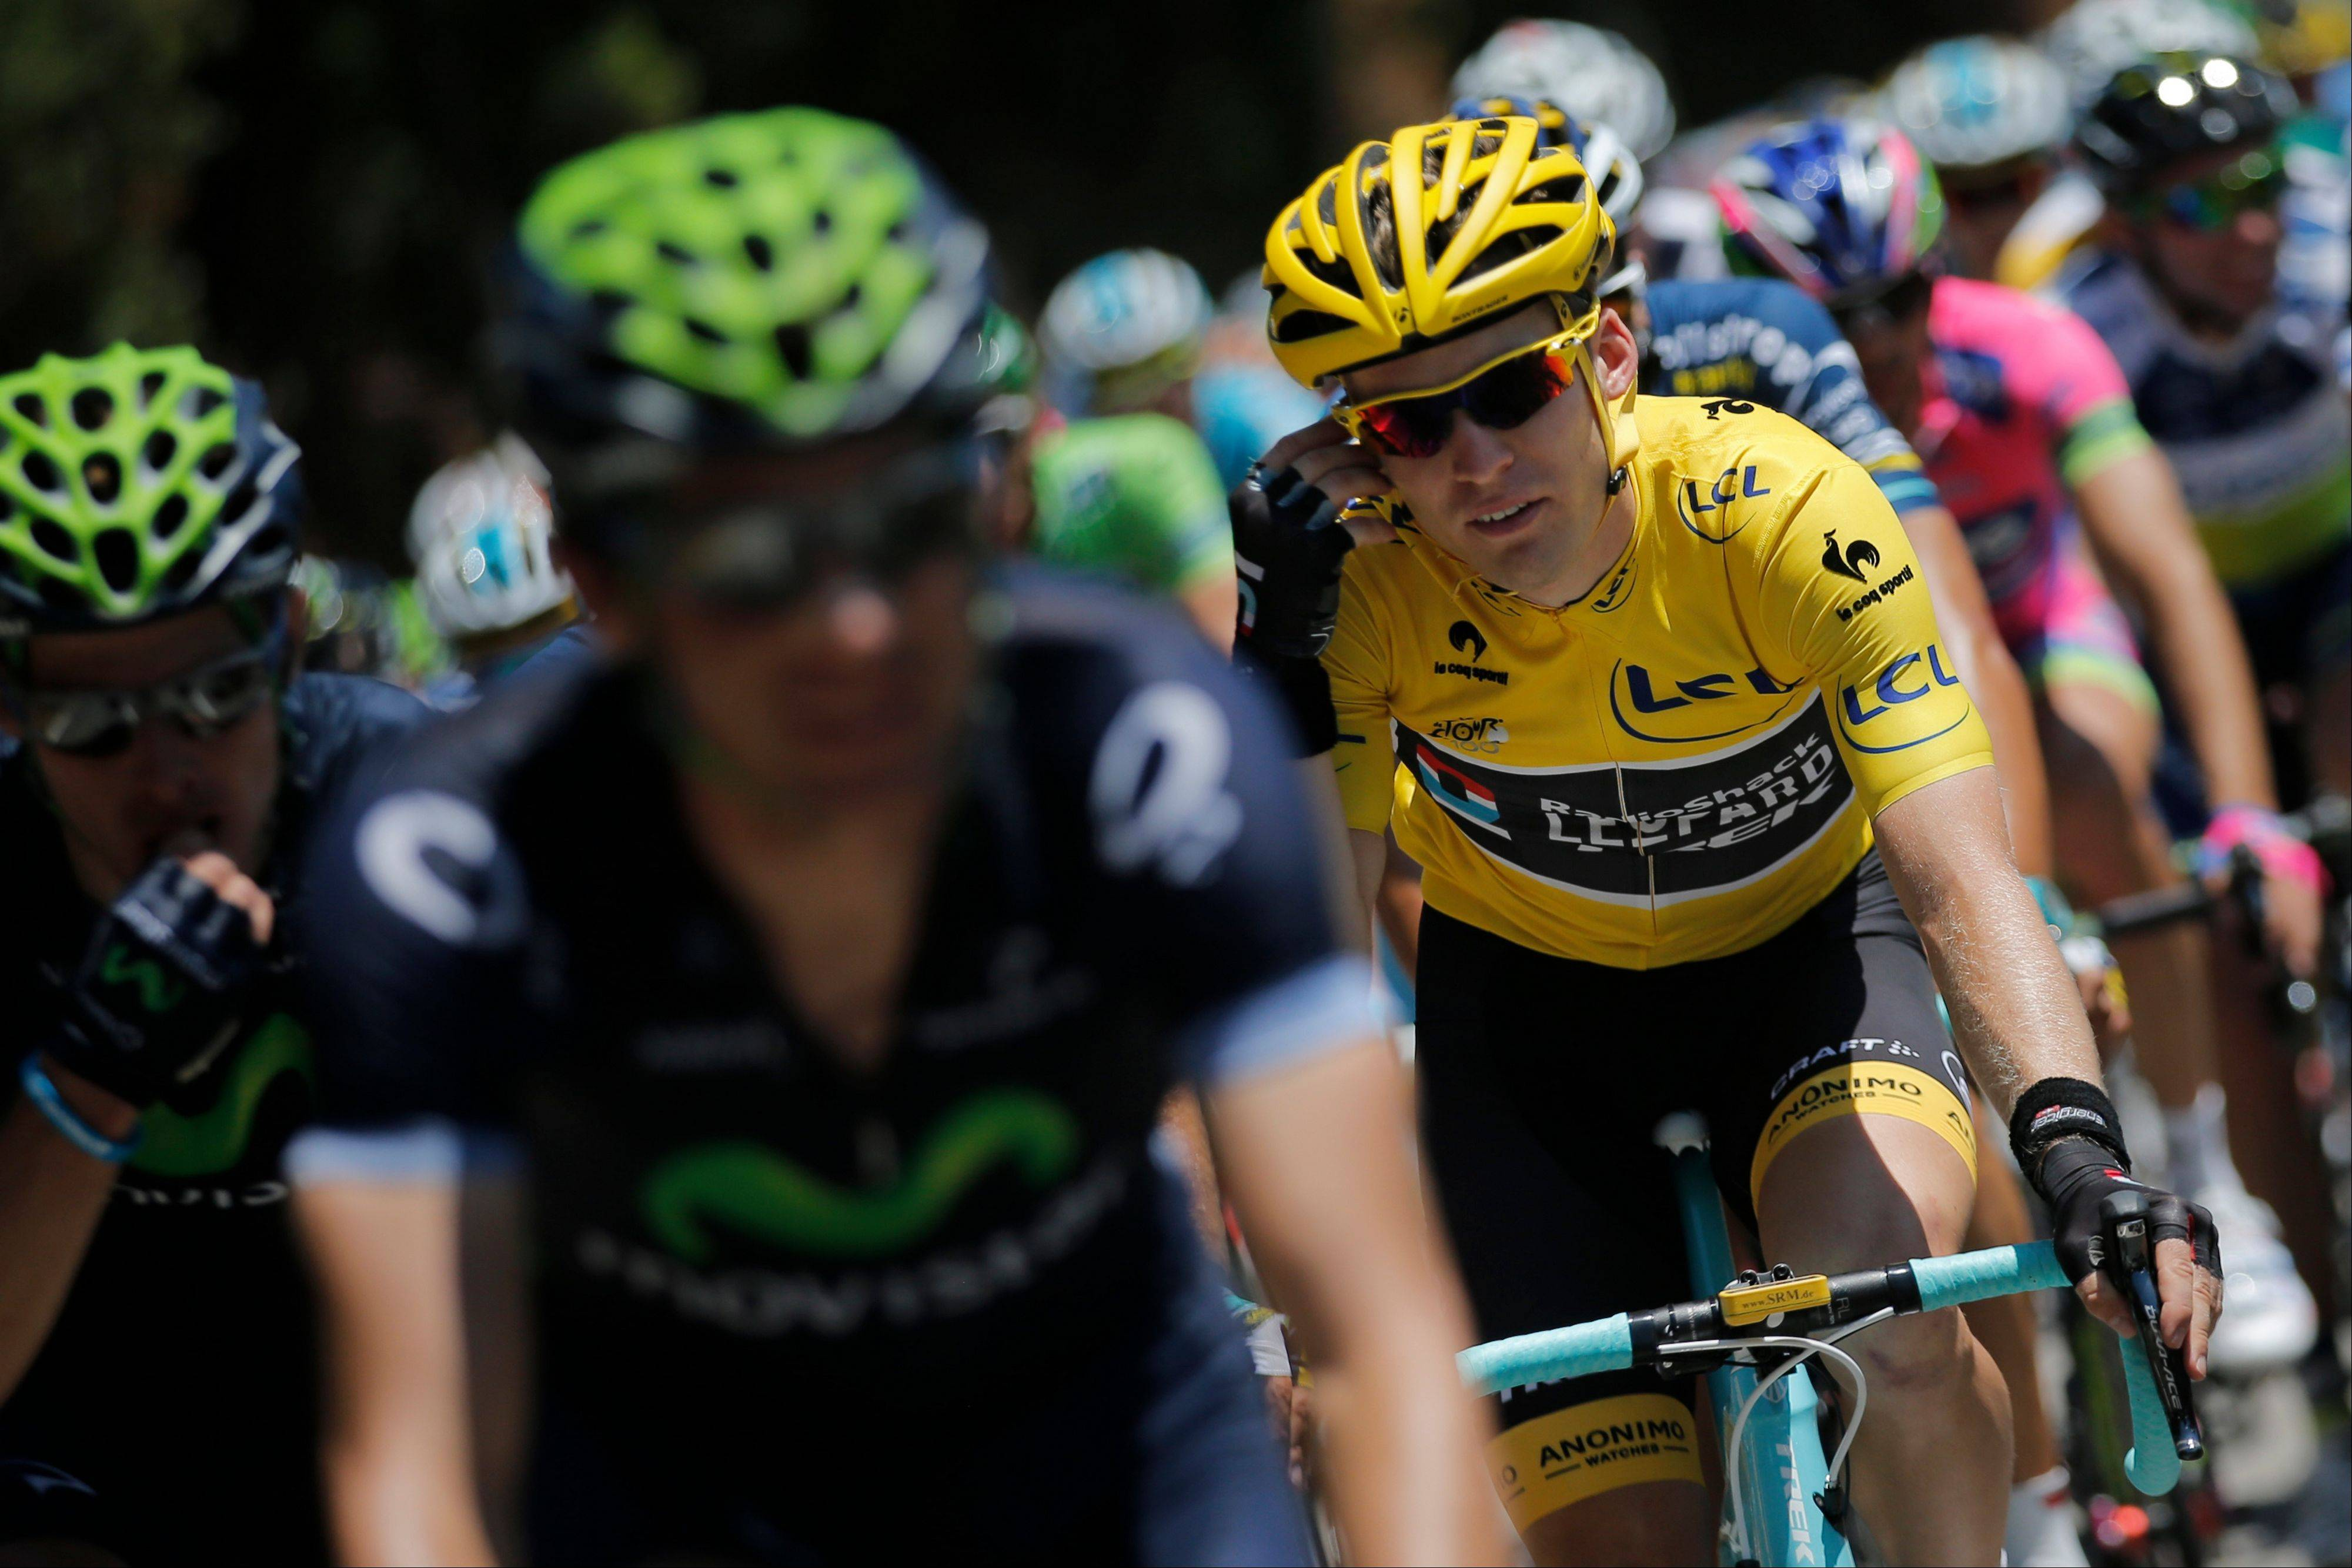 Jan Bakelants, wearing the overall leader's yellow jersey, rides in the pack Monday during the third stage of the Tour de France in Calvi, Corsica island, France.